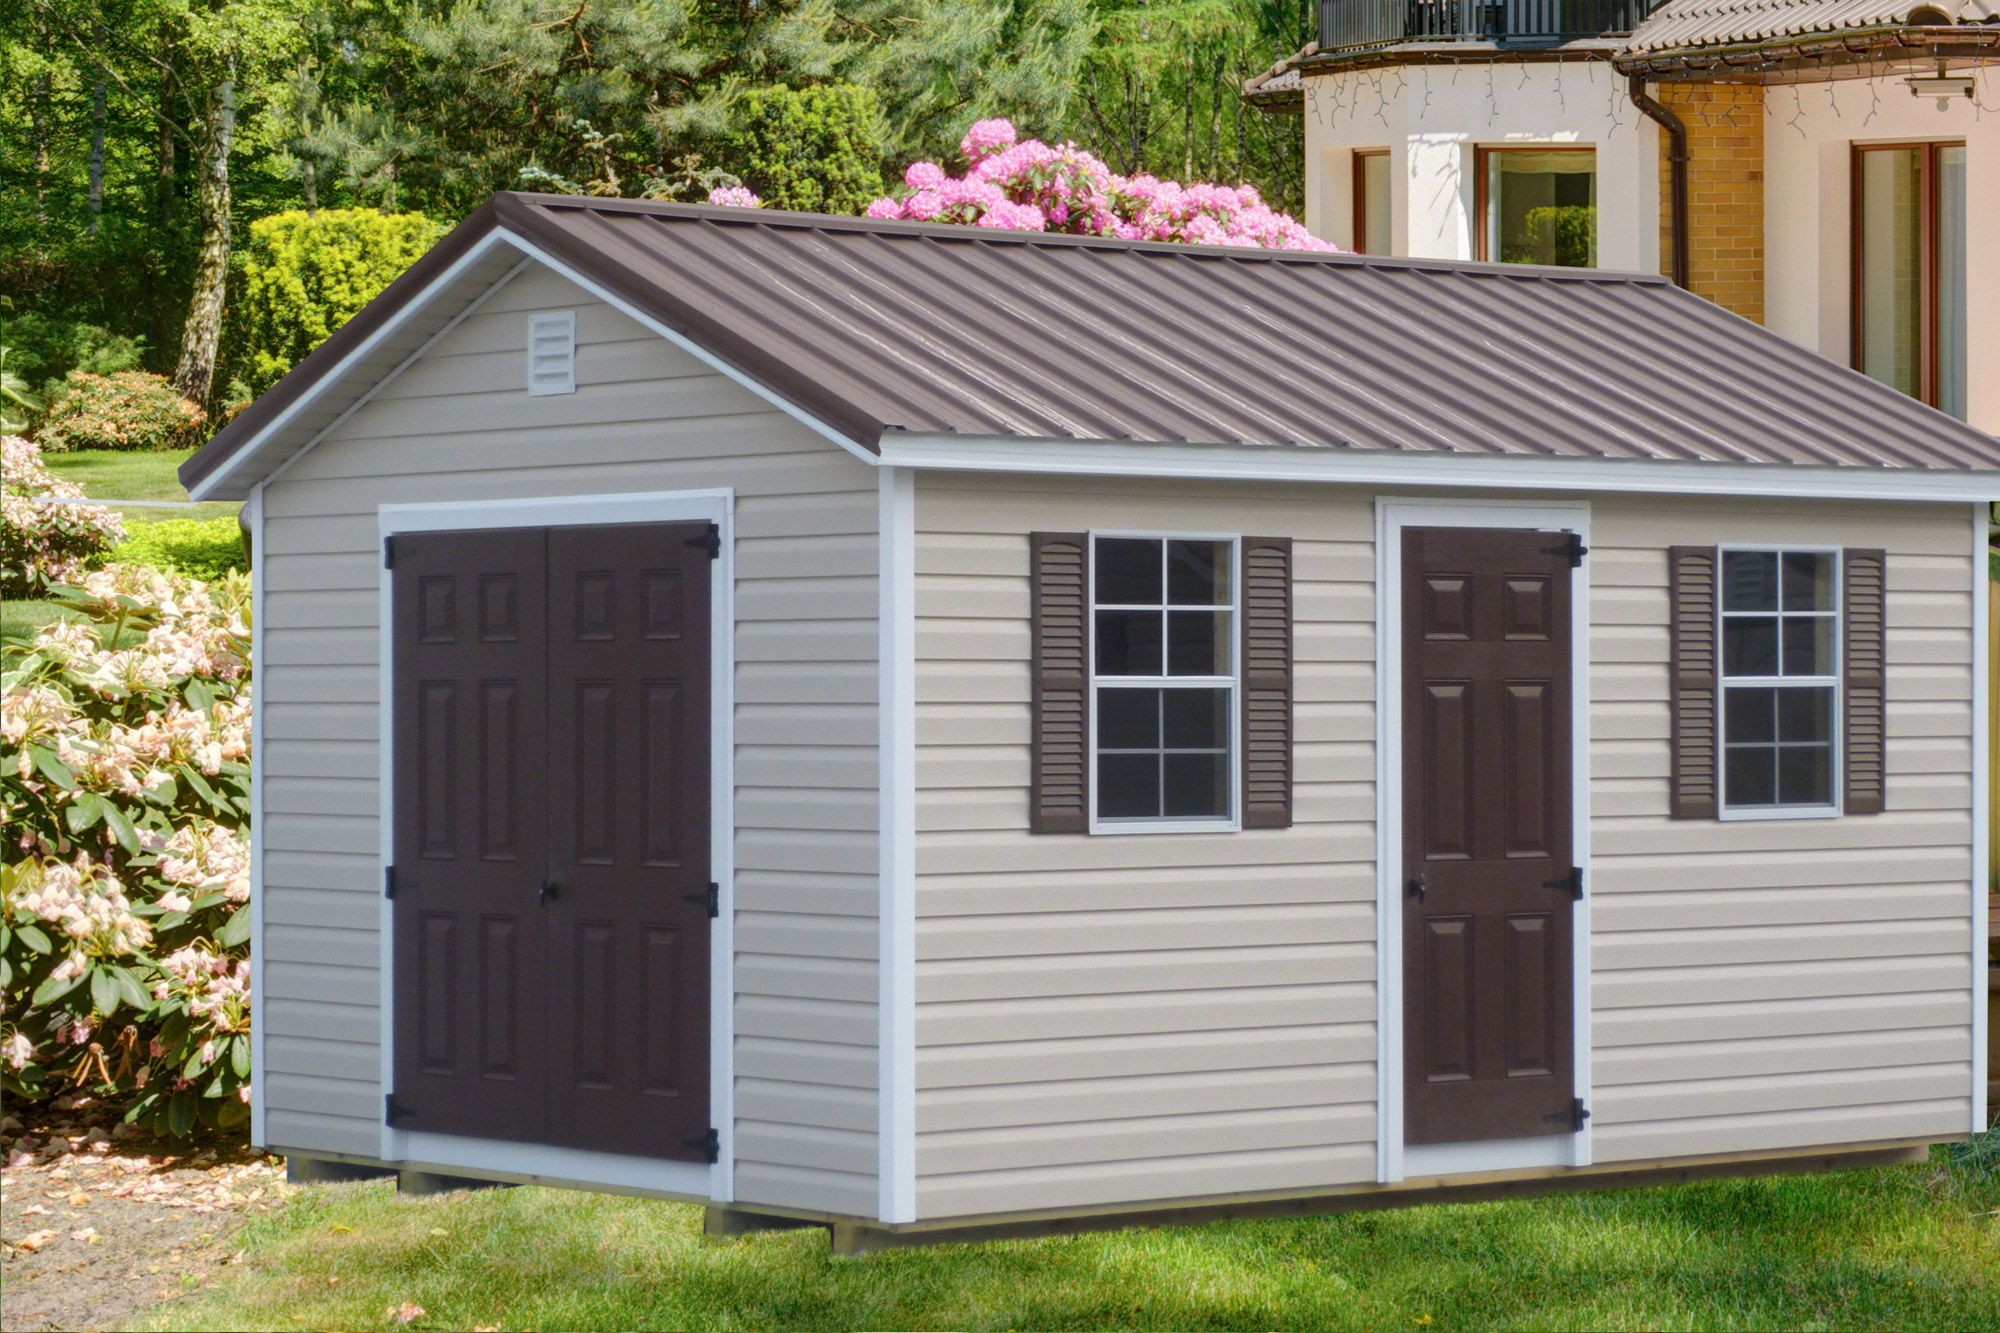 vinyl style shed siding com gazebocreations sheds by gable structurepath